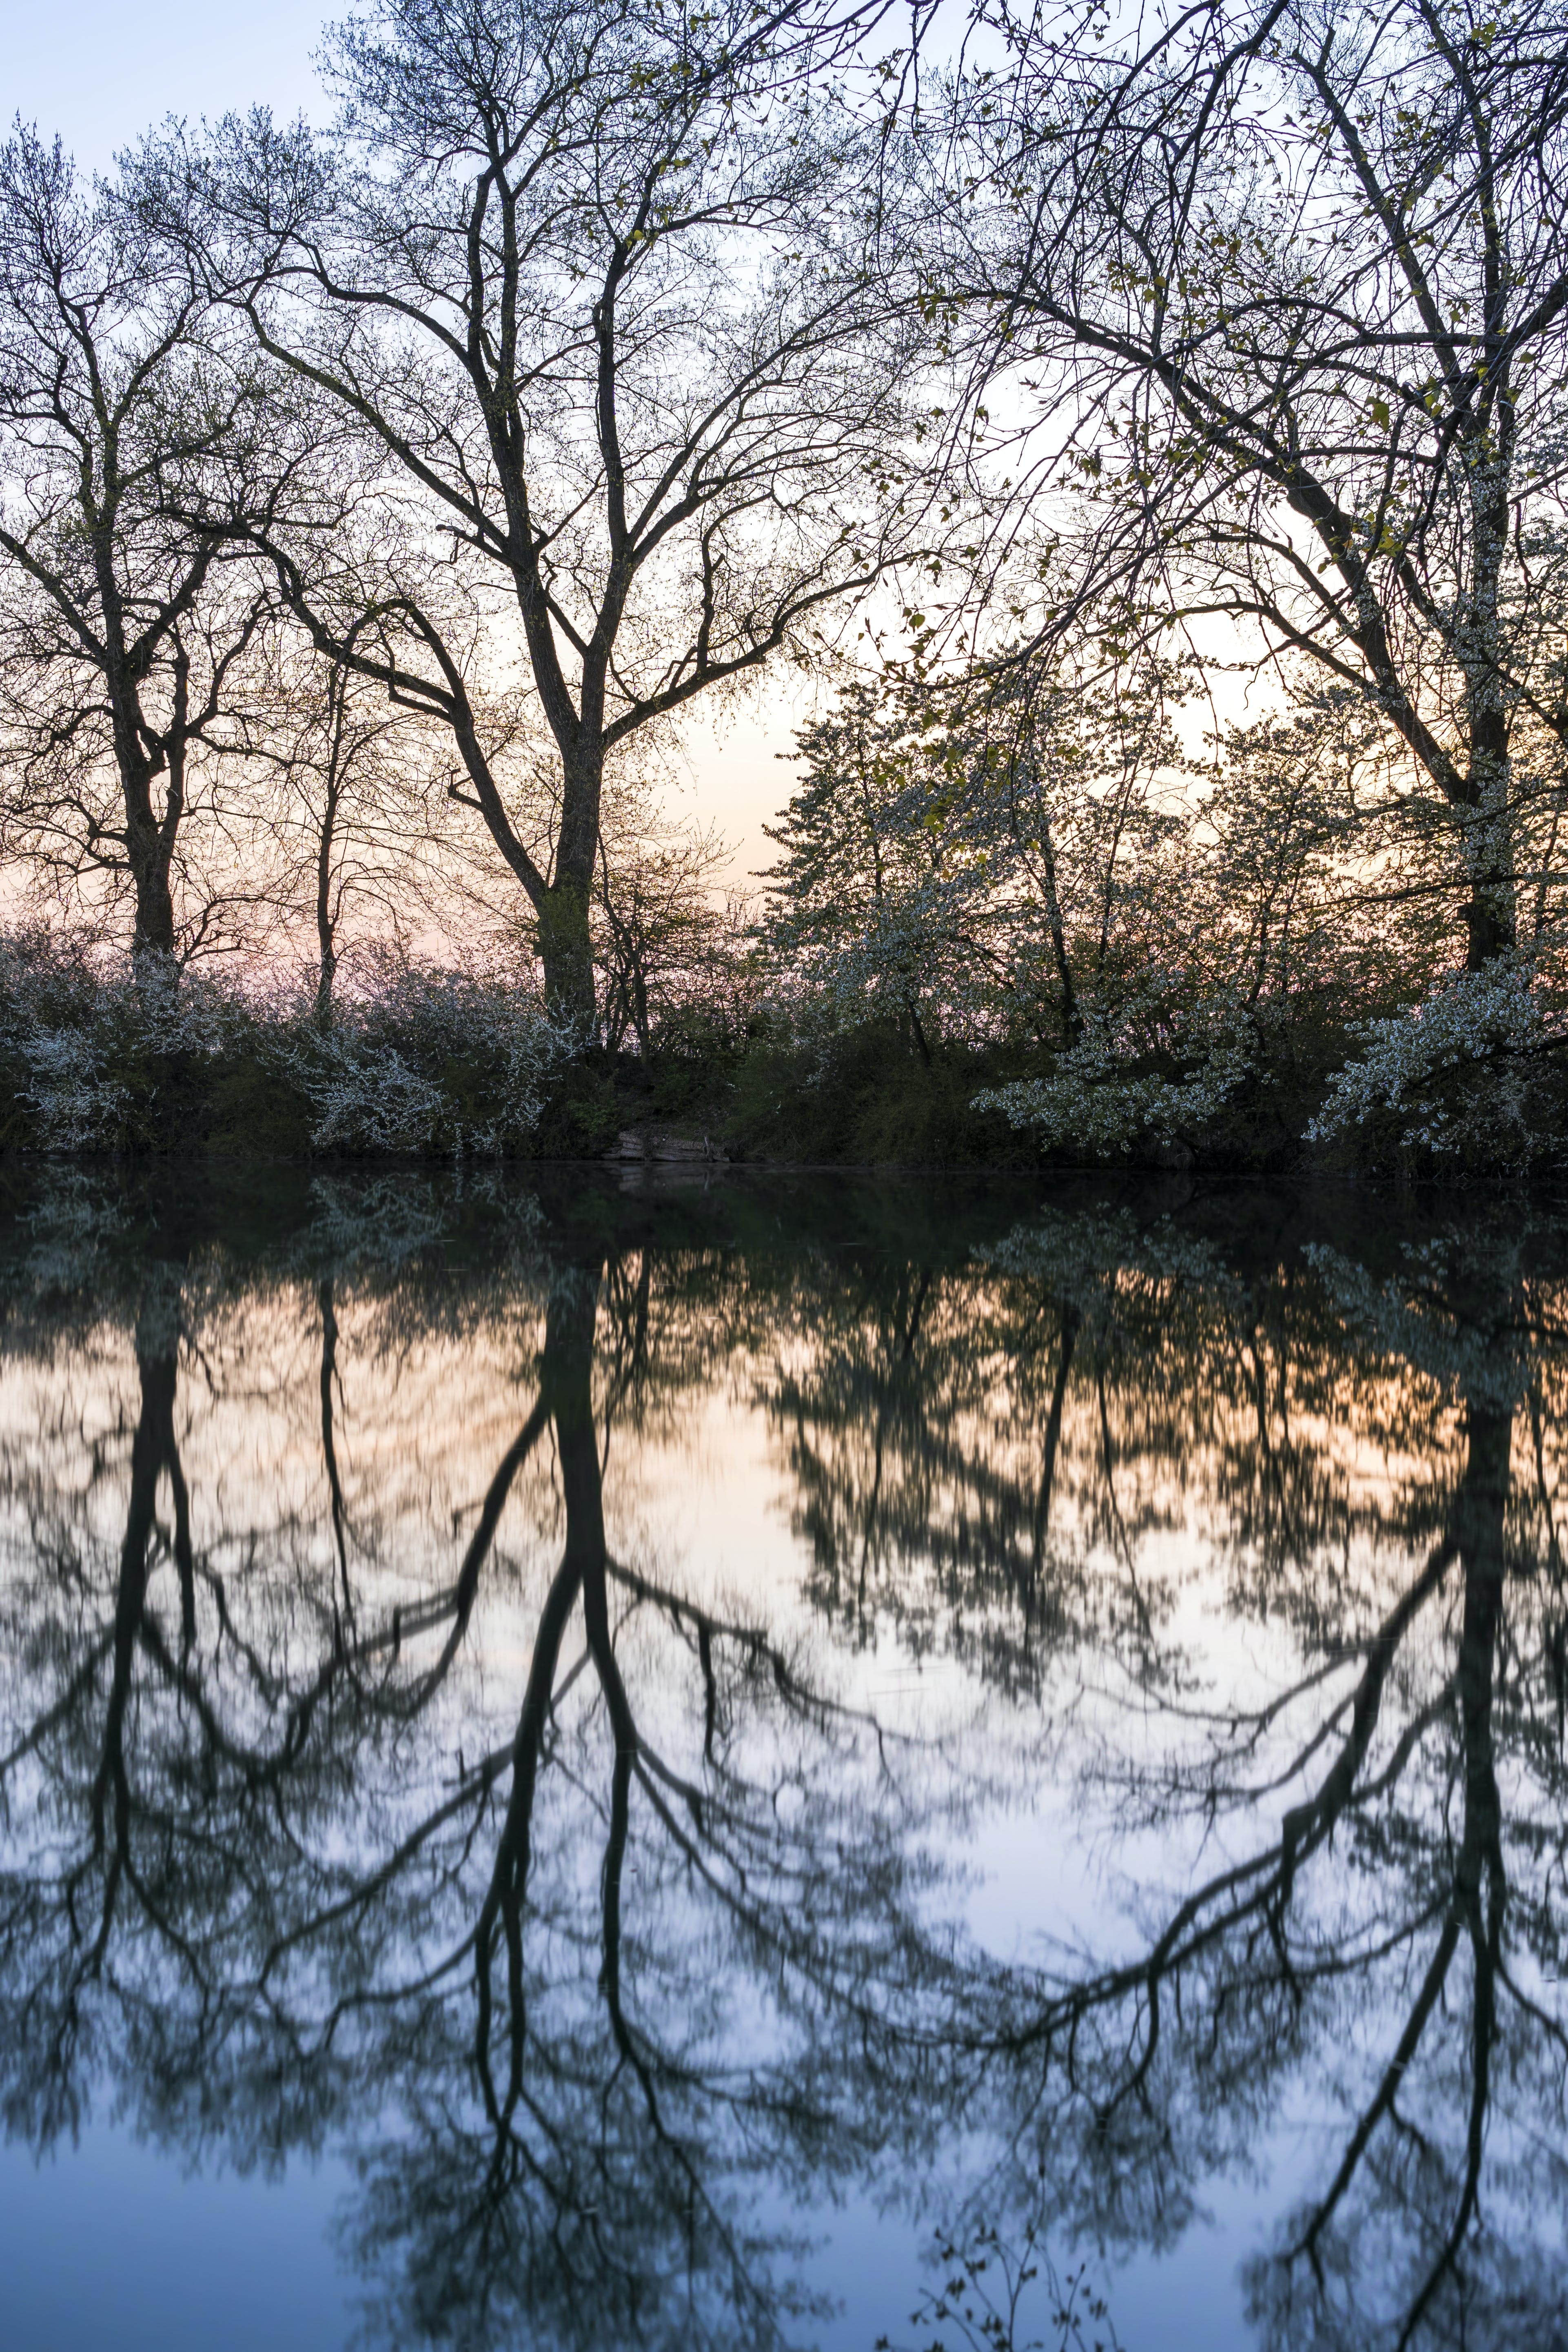 Bare Trees Near Grey Calm Body of Water at Daytime